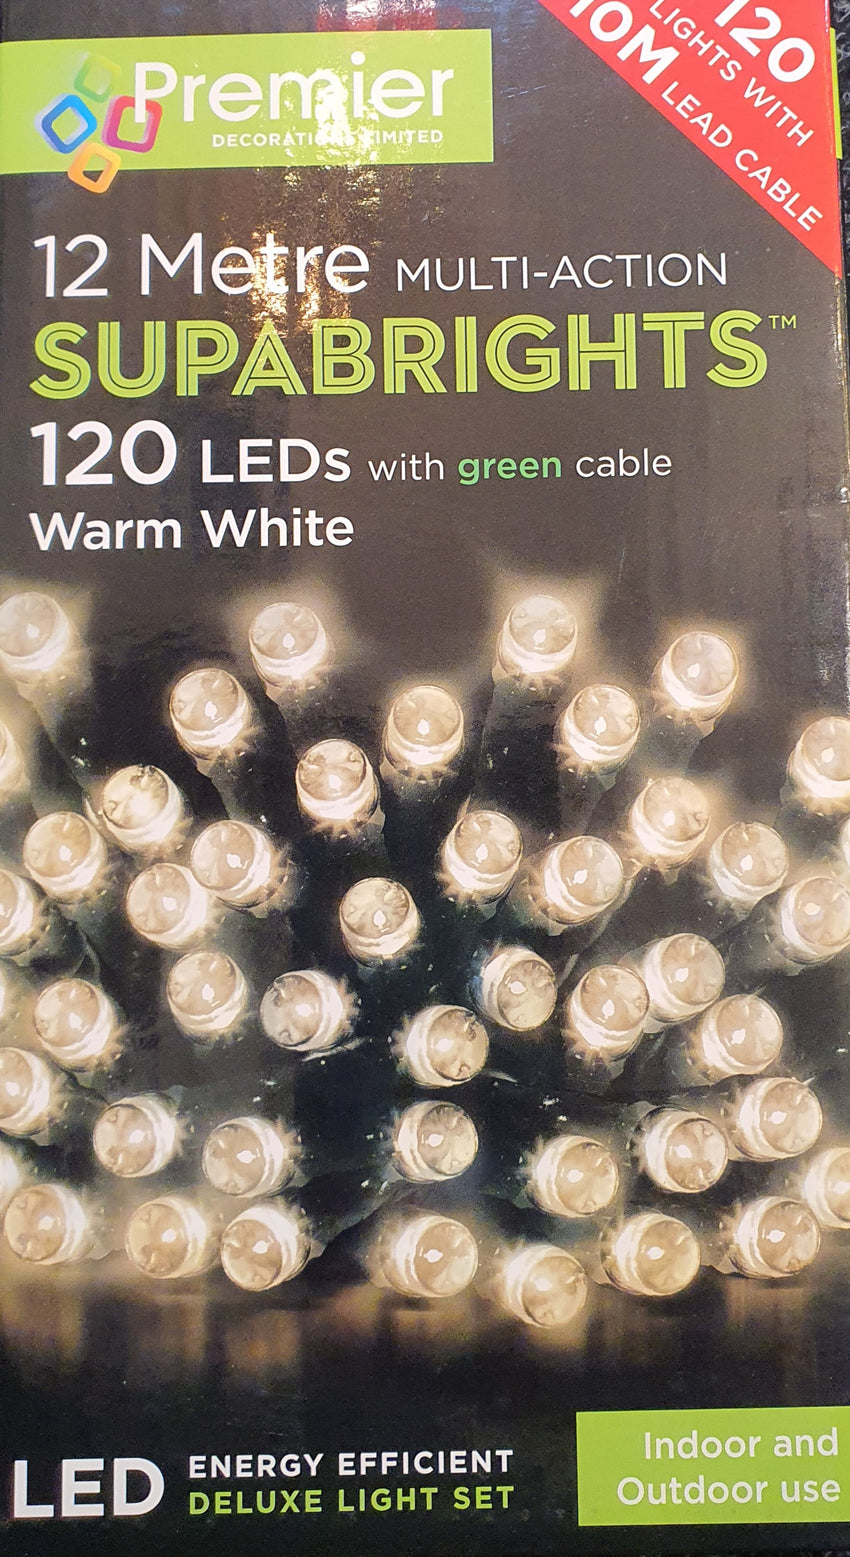 Premier 12 metre 120 LED 12 Meter Multi-Action Warm White